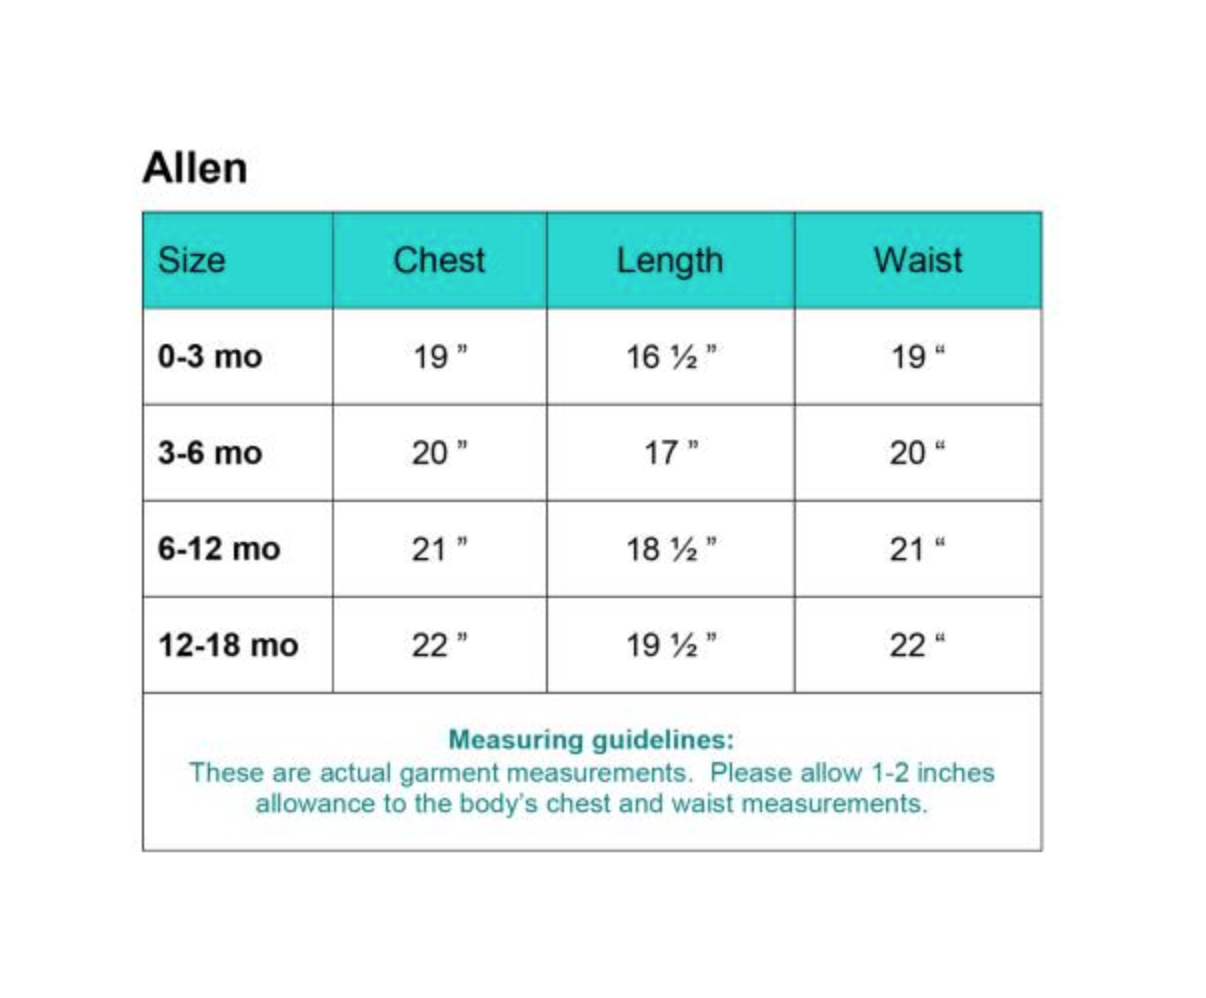 sizing-chart-allen.png